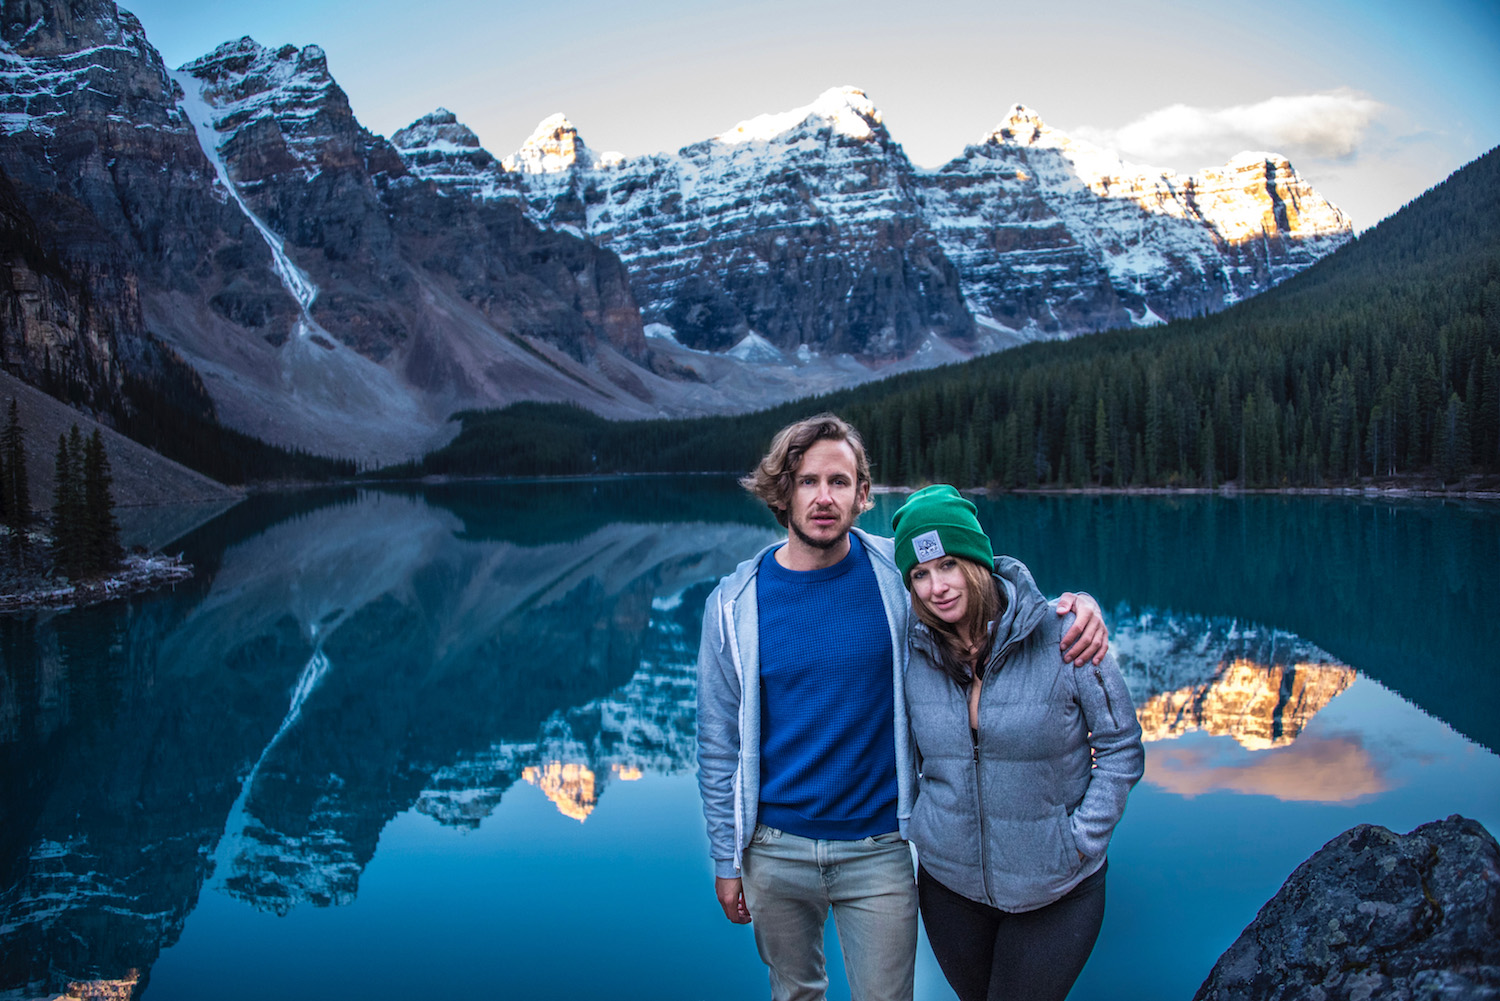 Robert Schrader and Sister at Lake Moraine, Alberta, Canada